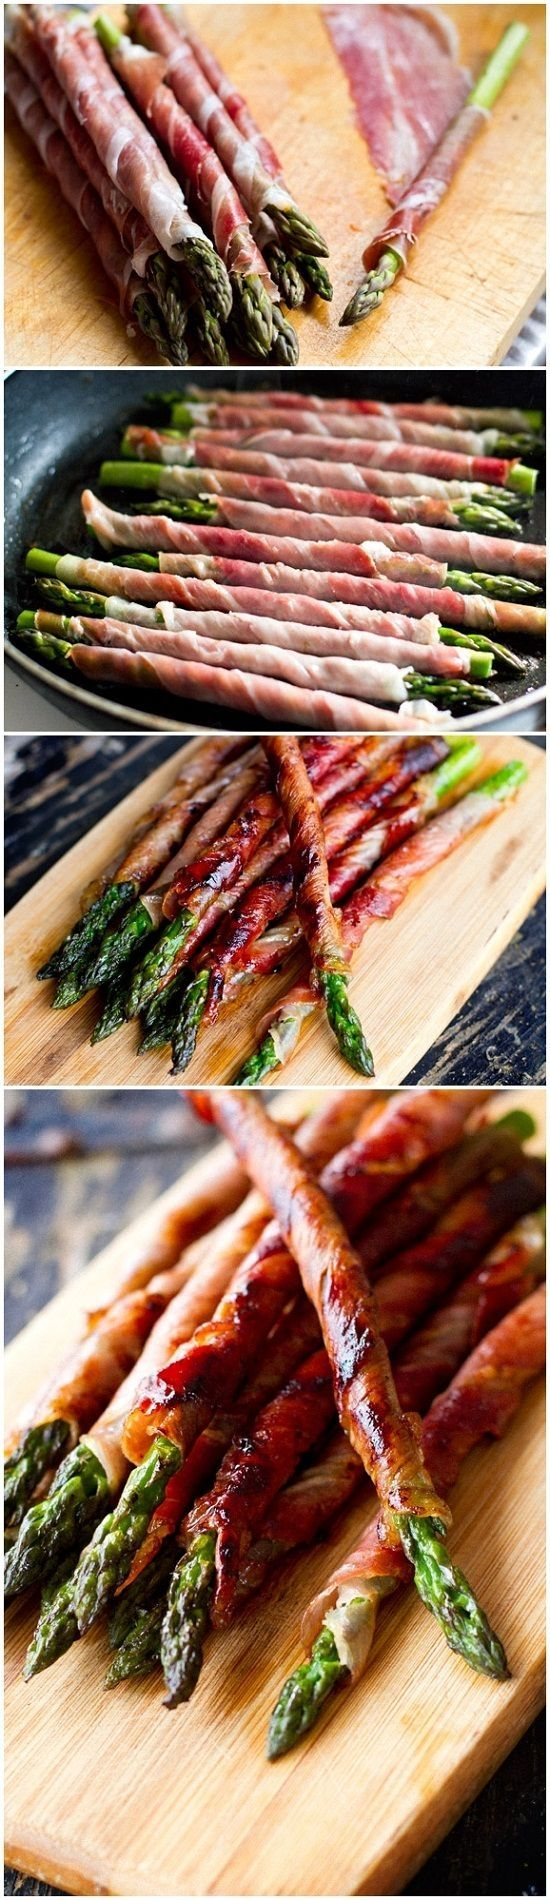 Prosciutto Wrapped Asparagus by Chris Topher